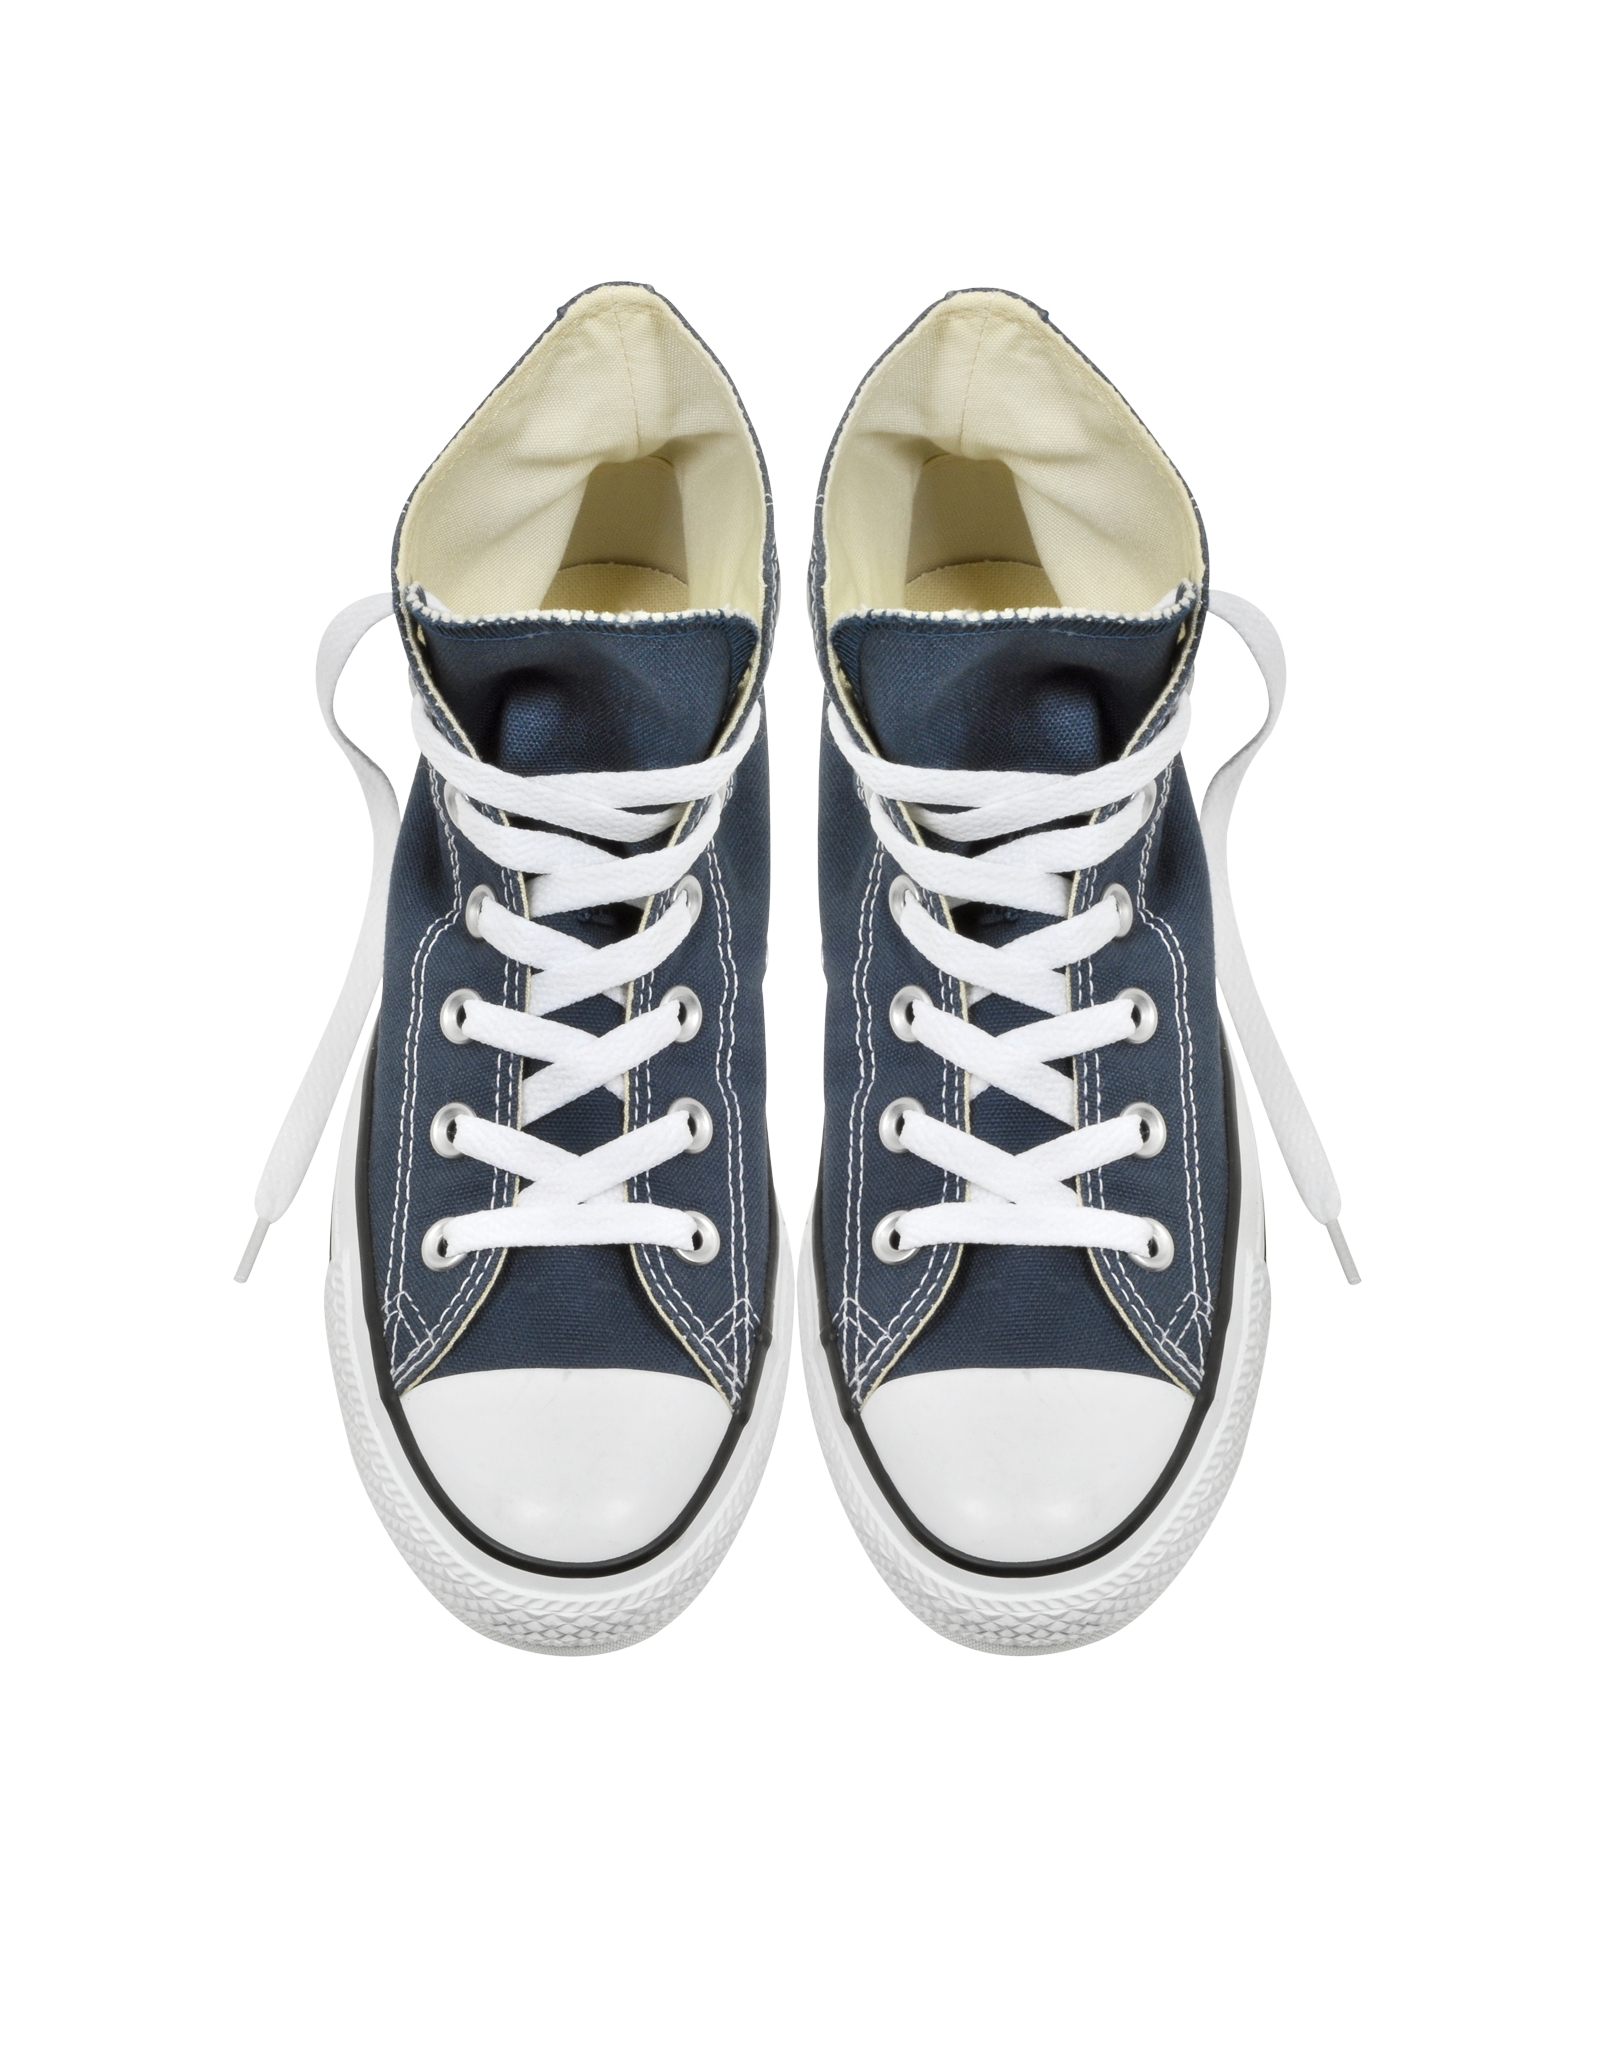 Free shipping and returns on Women's Blue High-Top Sneakers at dirtyinstalzonevx6.ga